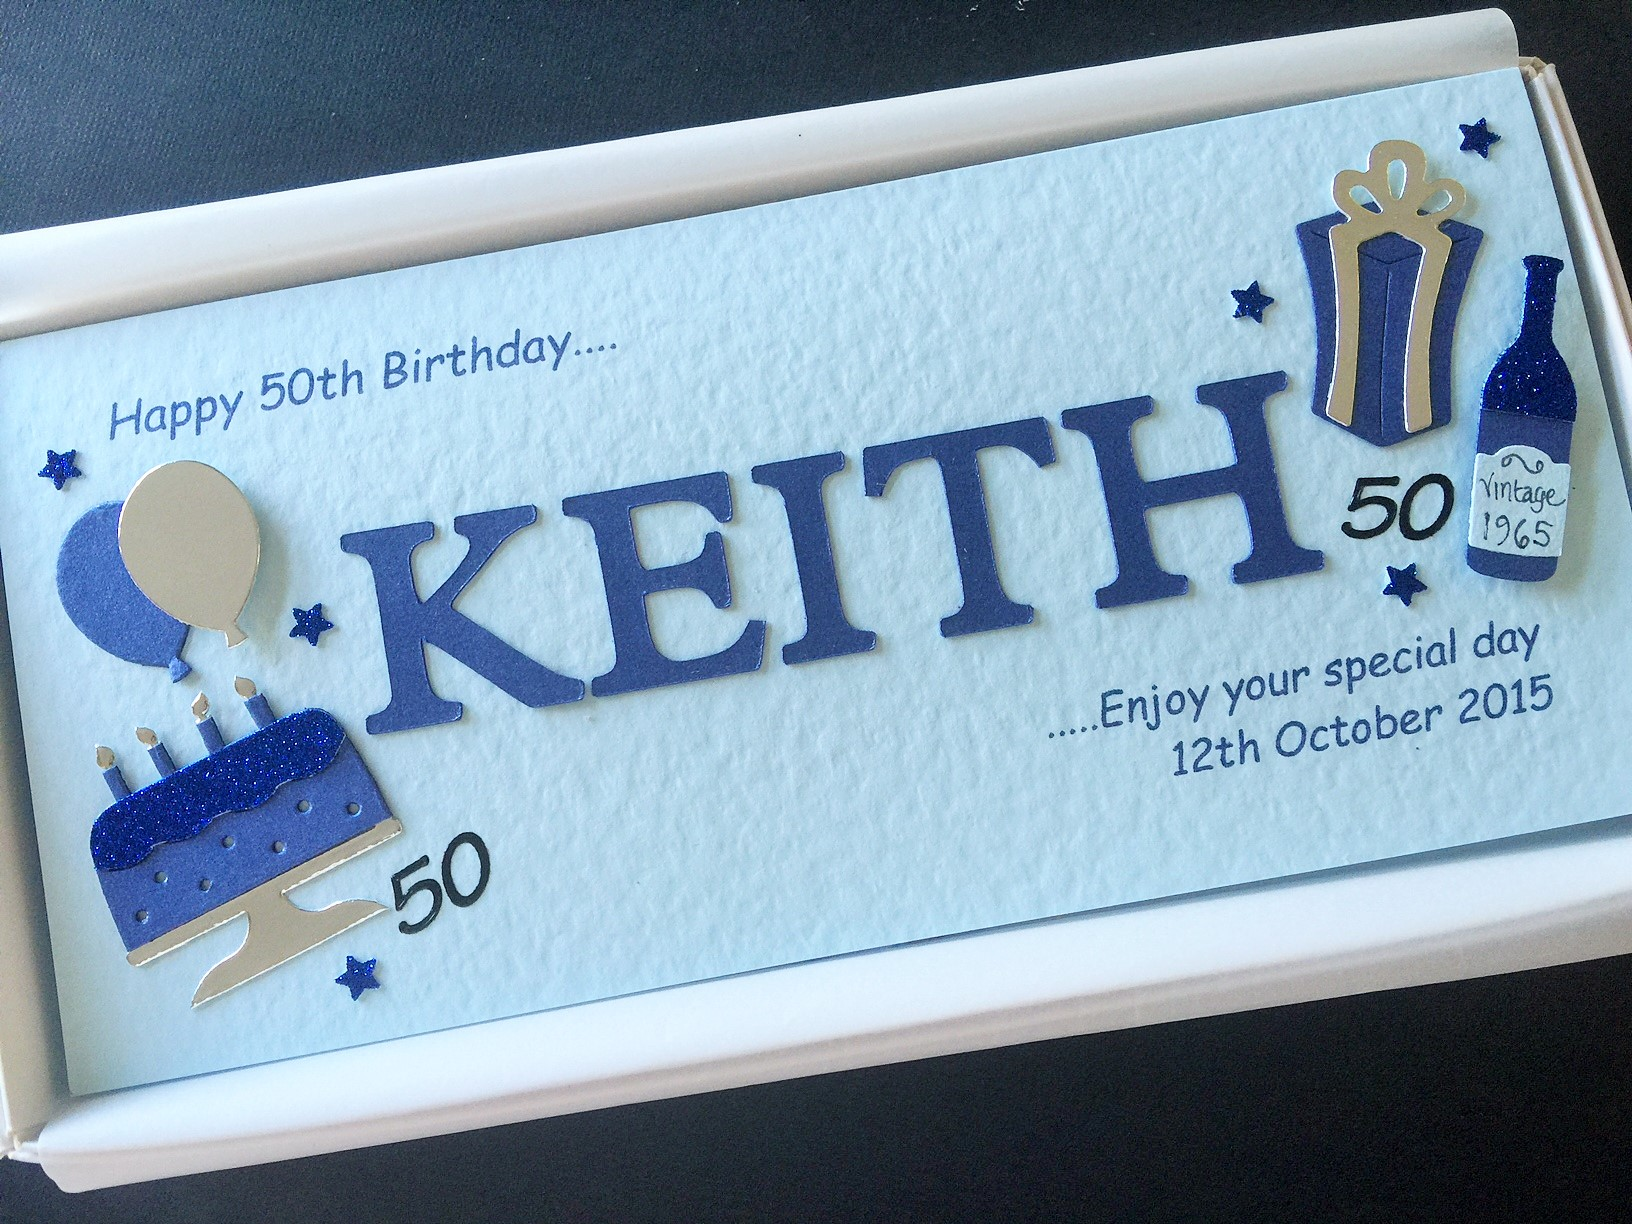 Mens Cut Out Name On Slim Card With Birthday Decorations Navy Blue